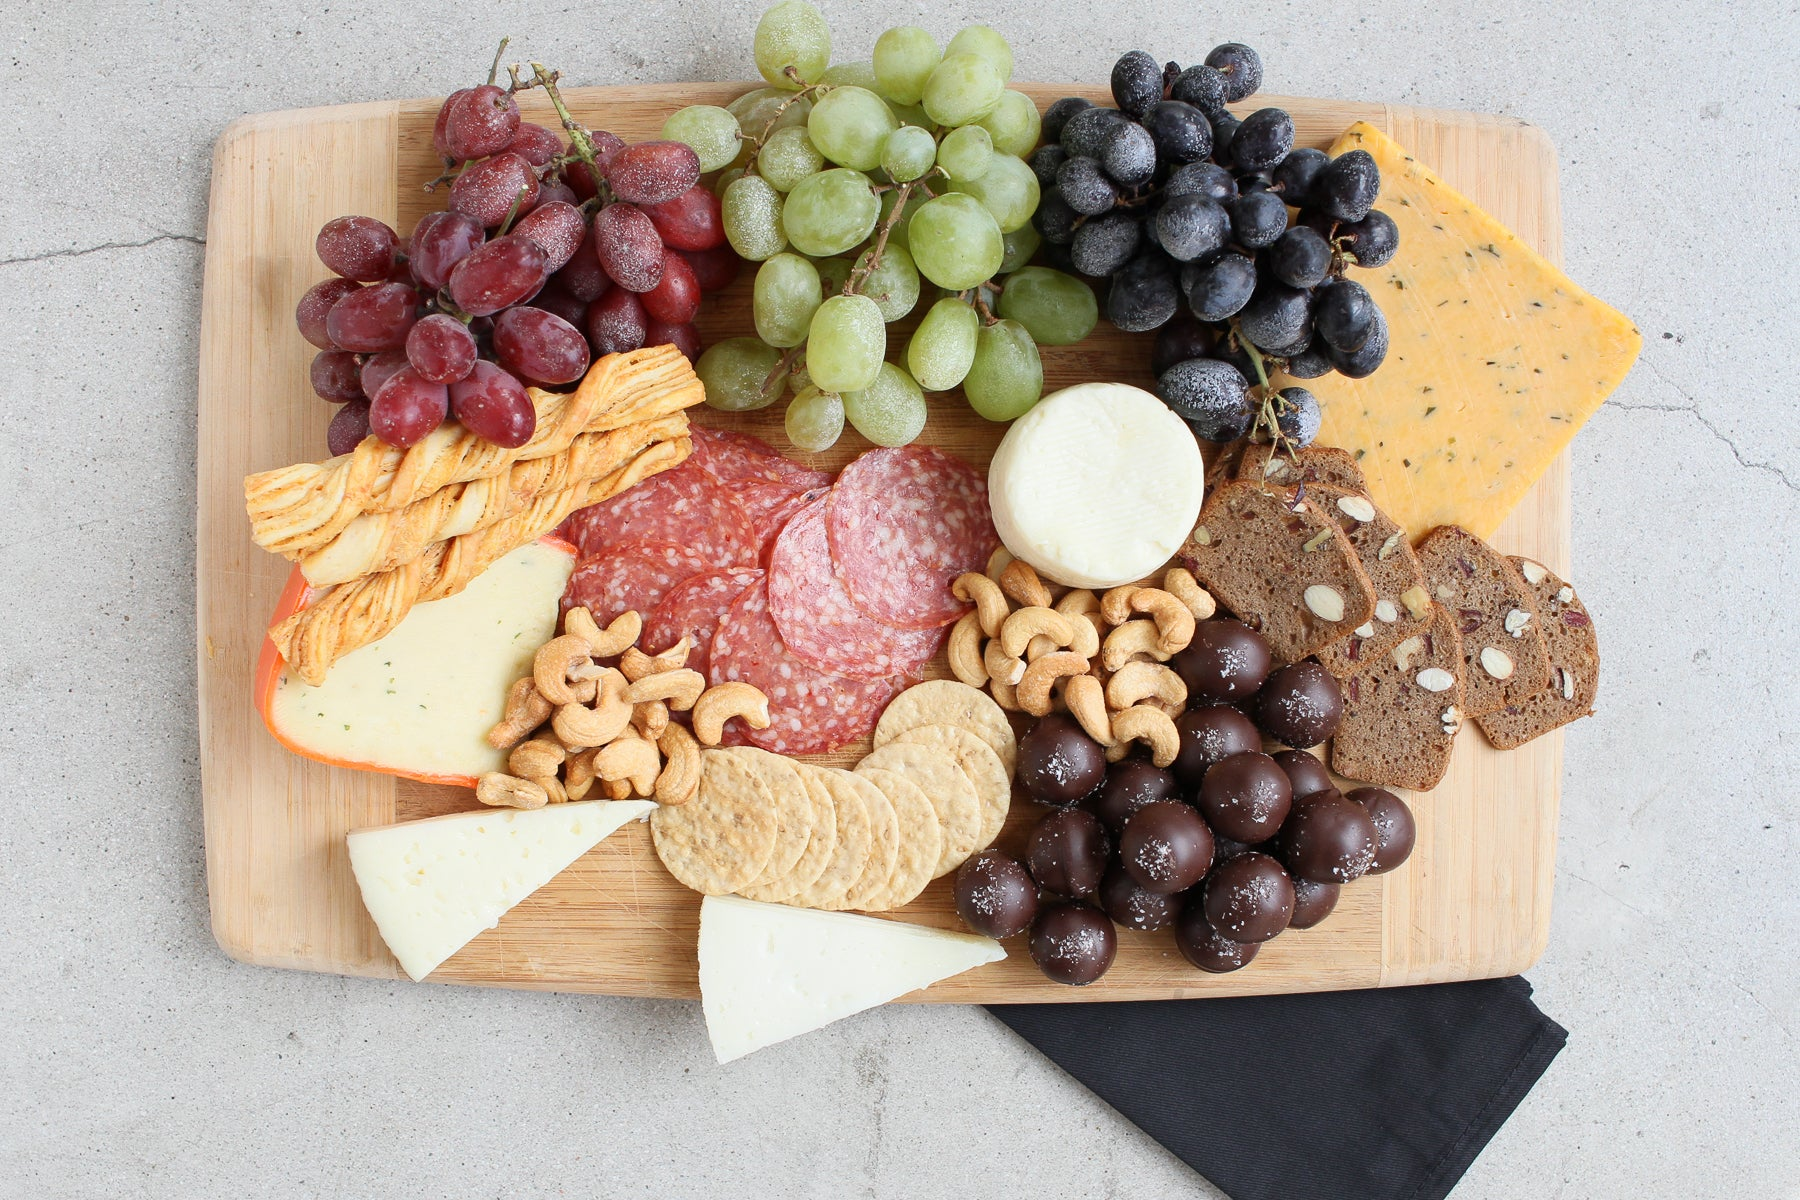 Two Fun Charcuterie Board Ideas for Your Next Party